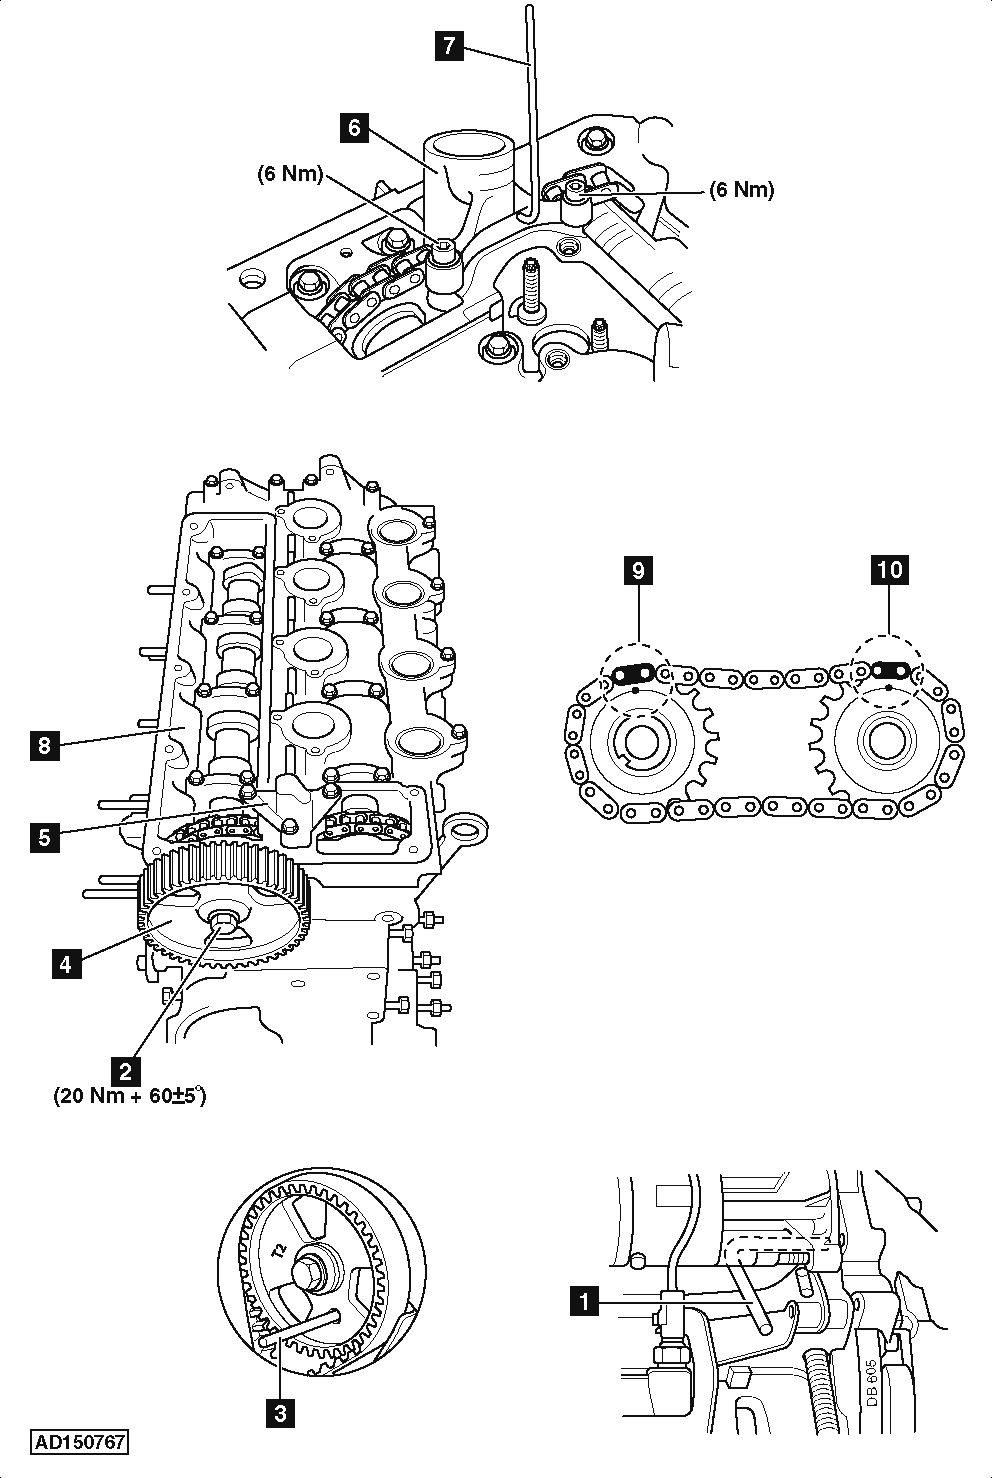 wiring diagram for 94 jeep cherokee with Toyota 3 V6 Engine Diagram on 97 Grand Marquis Engine Diagram besides 1990 Jeep Wrangler Front Axle Vacuum Diagram also RepairGuideContent as well Chevrolet Silverado 1994 Chevy Silverado Firing Order Of Plugs moreover Search.